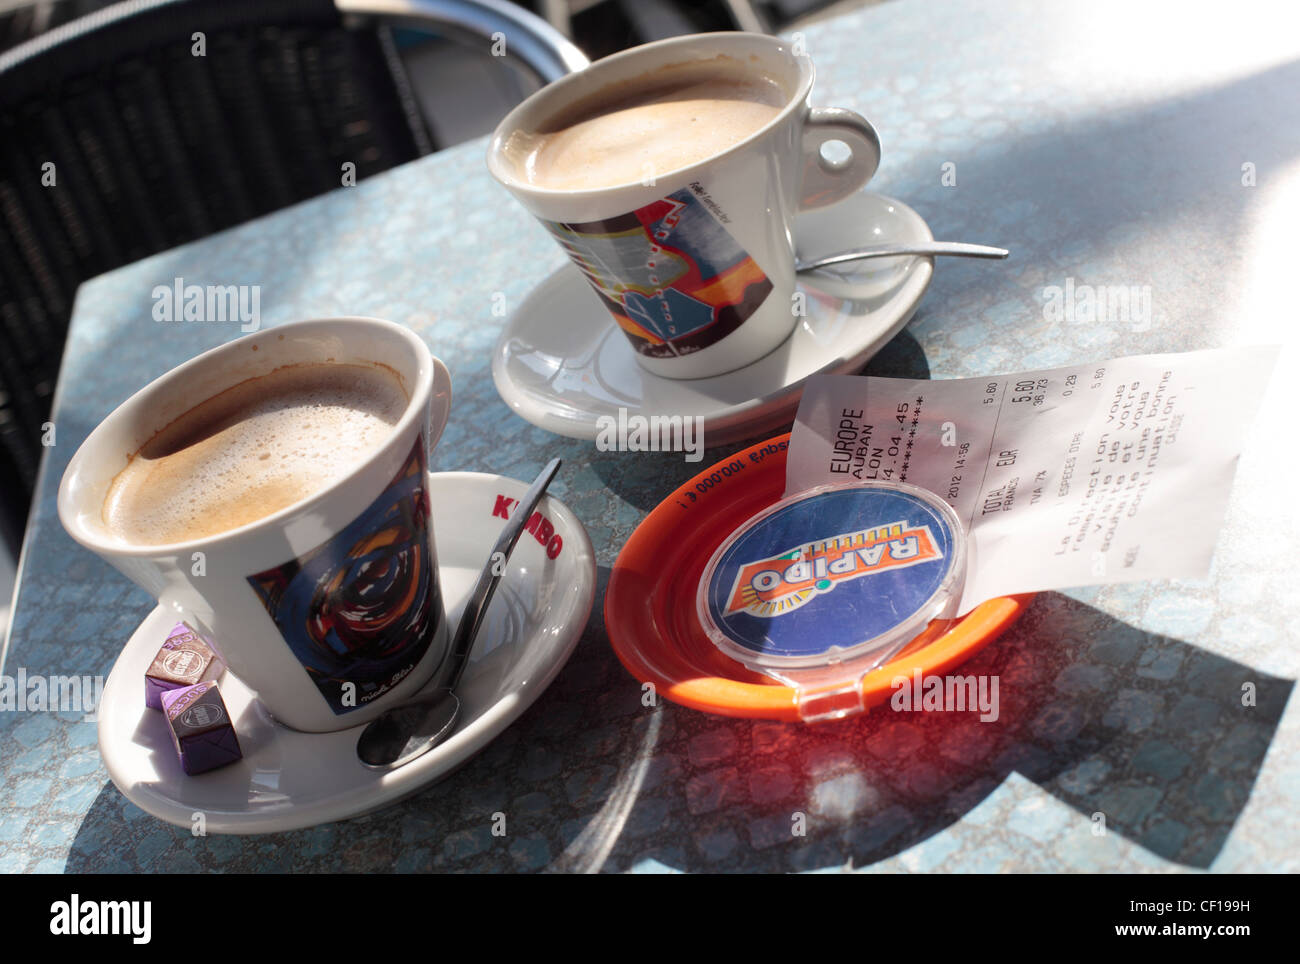 French Cafe - coffee cups and bill - Stock Image